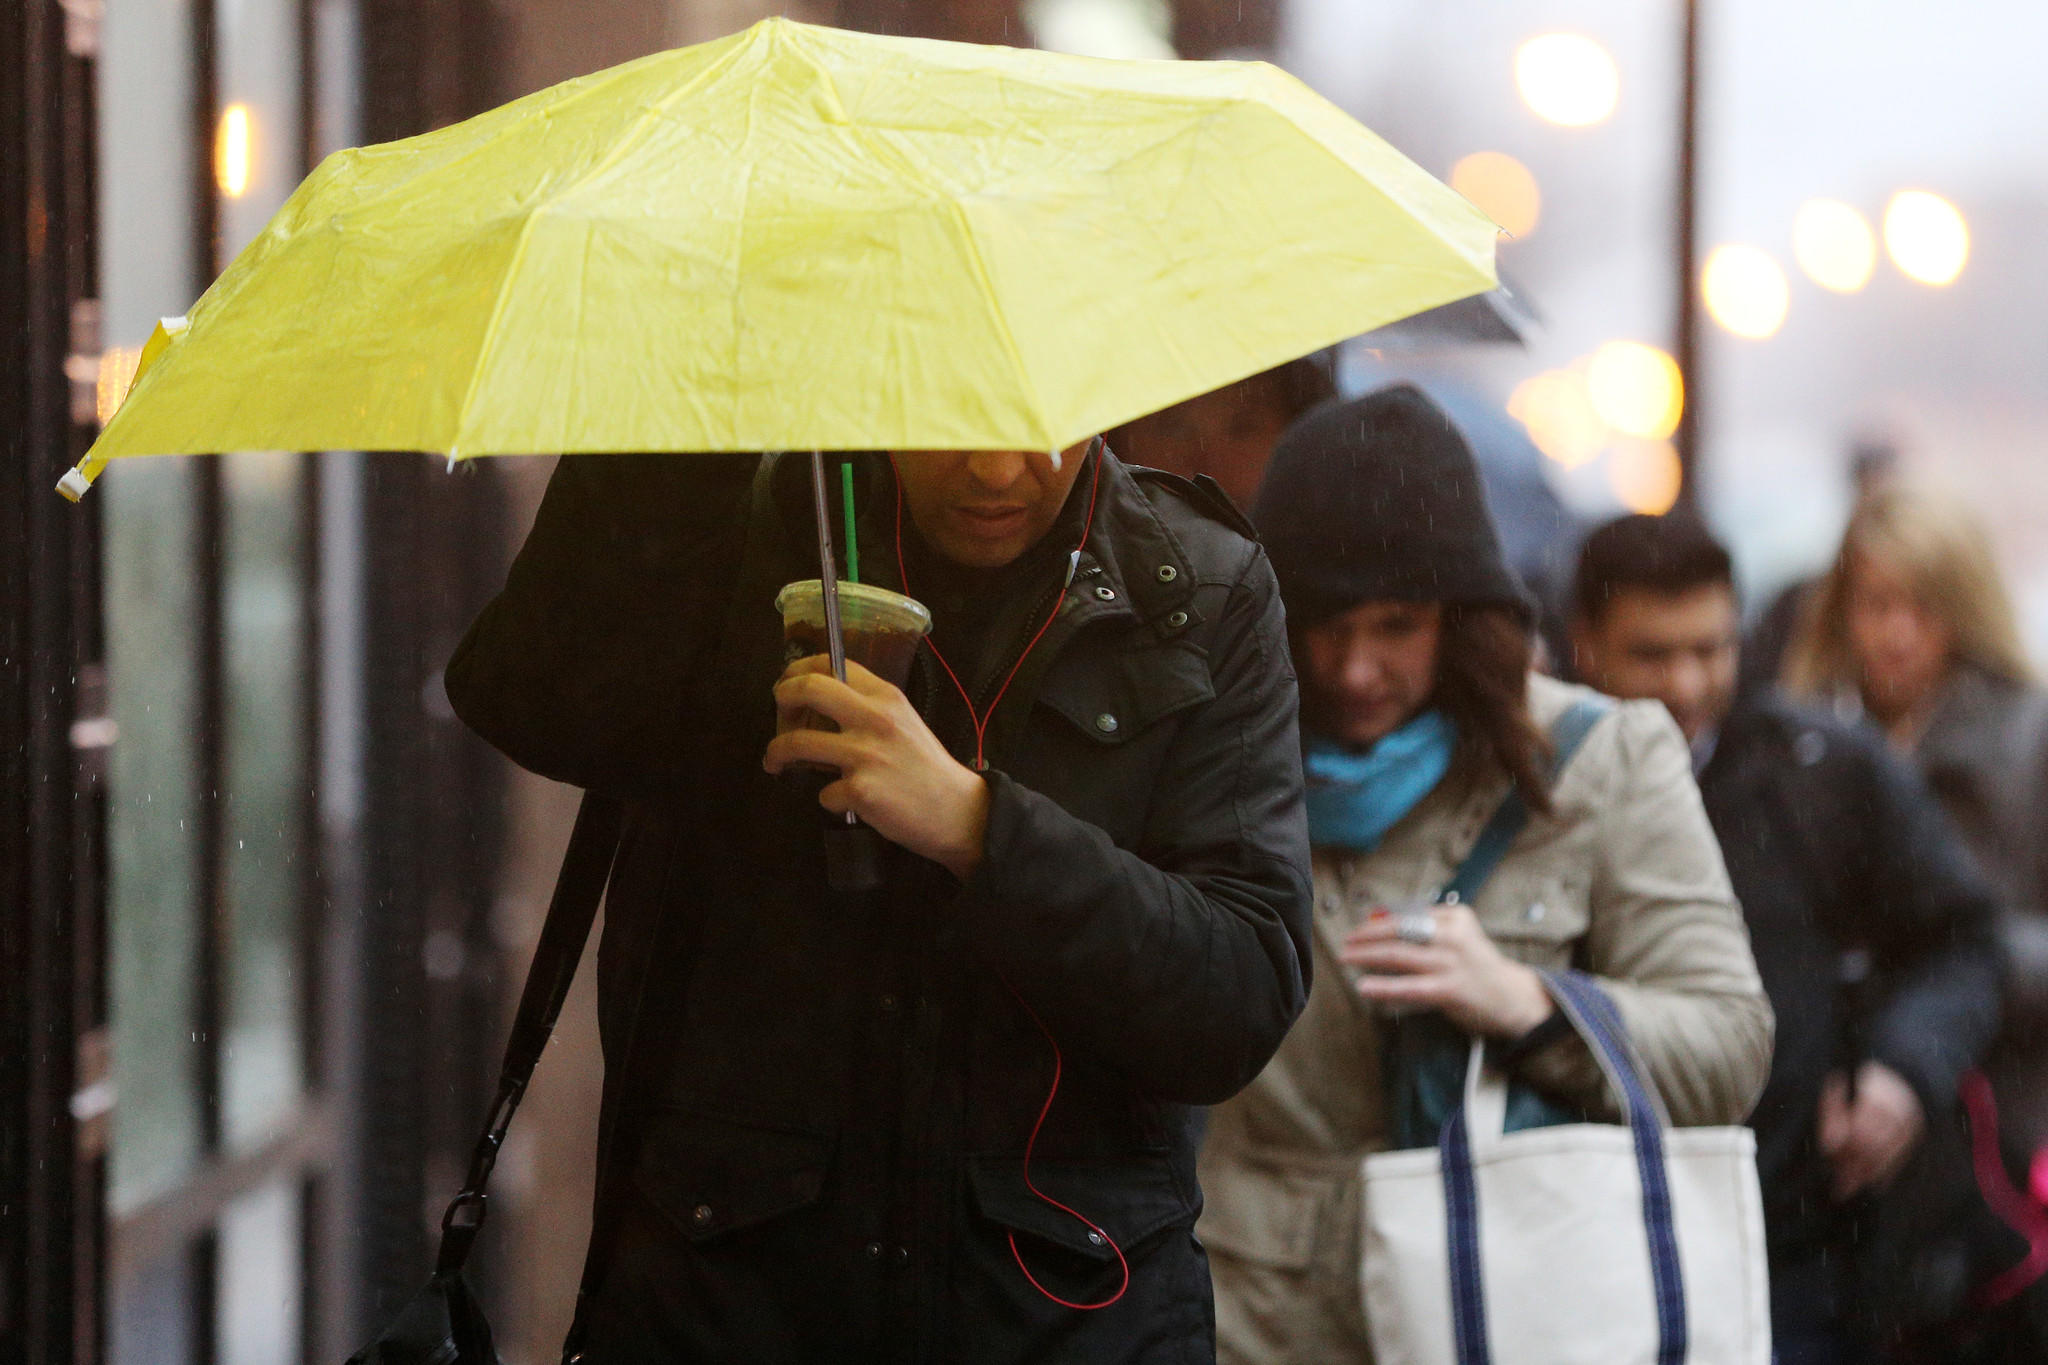 Commuters juggle coffee and umbrellas in the sloppy weather.